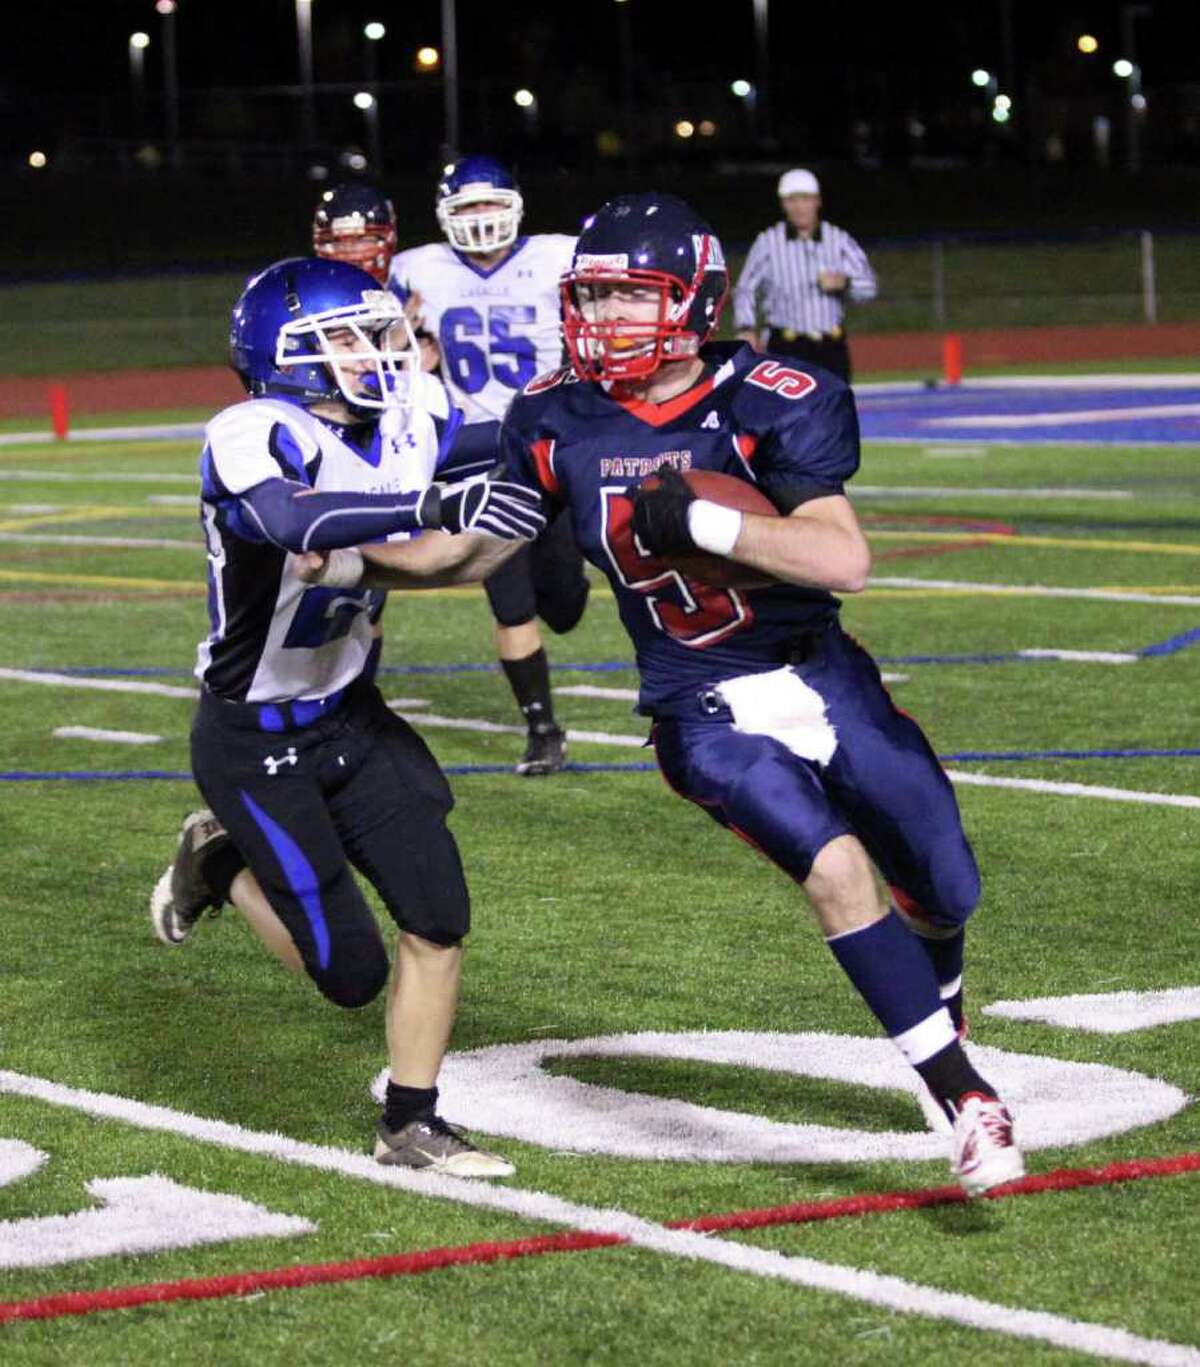 High school football -- Schenectady's Tim Cox (5) runs past La Salle's Conor Shanahan (24) on Friday Oct. 8. (Patrick Dodson / Special to the Times Union)